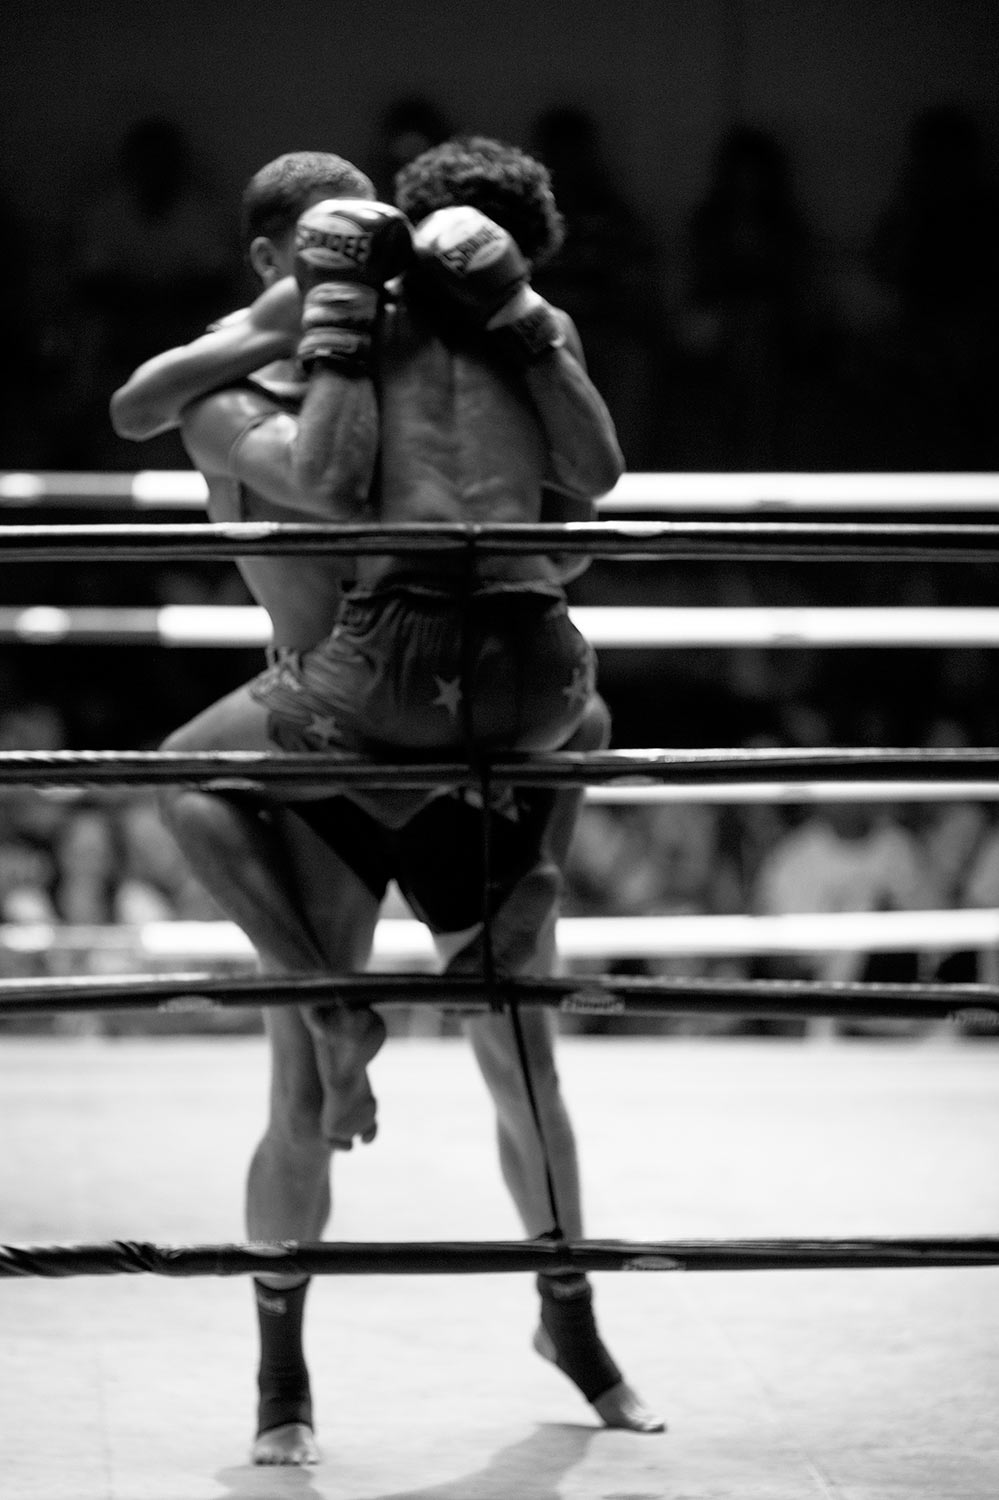 A close Muay Thai match.